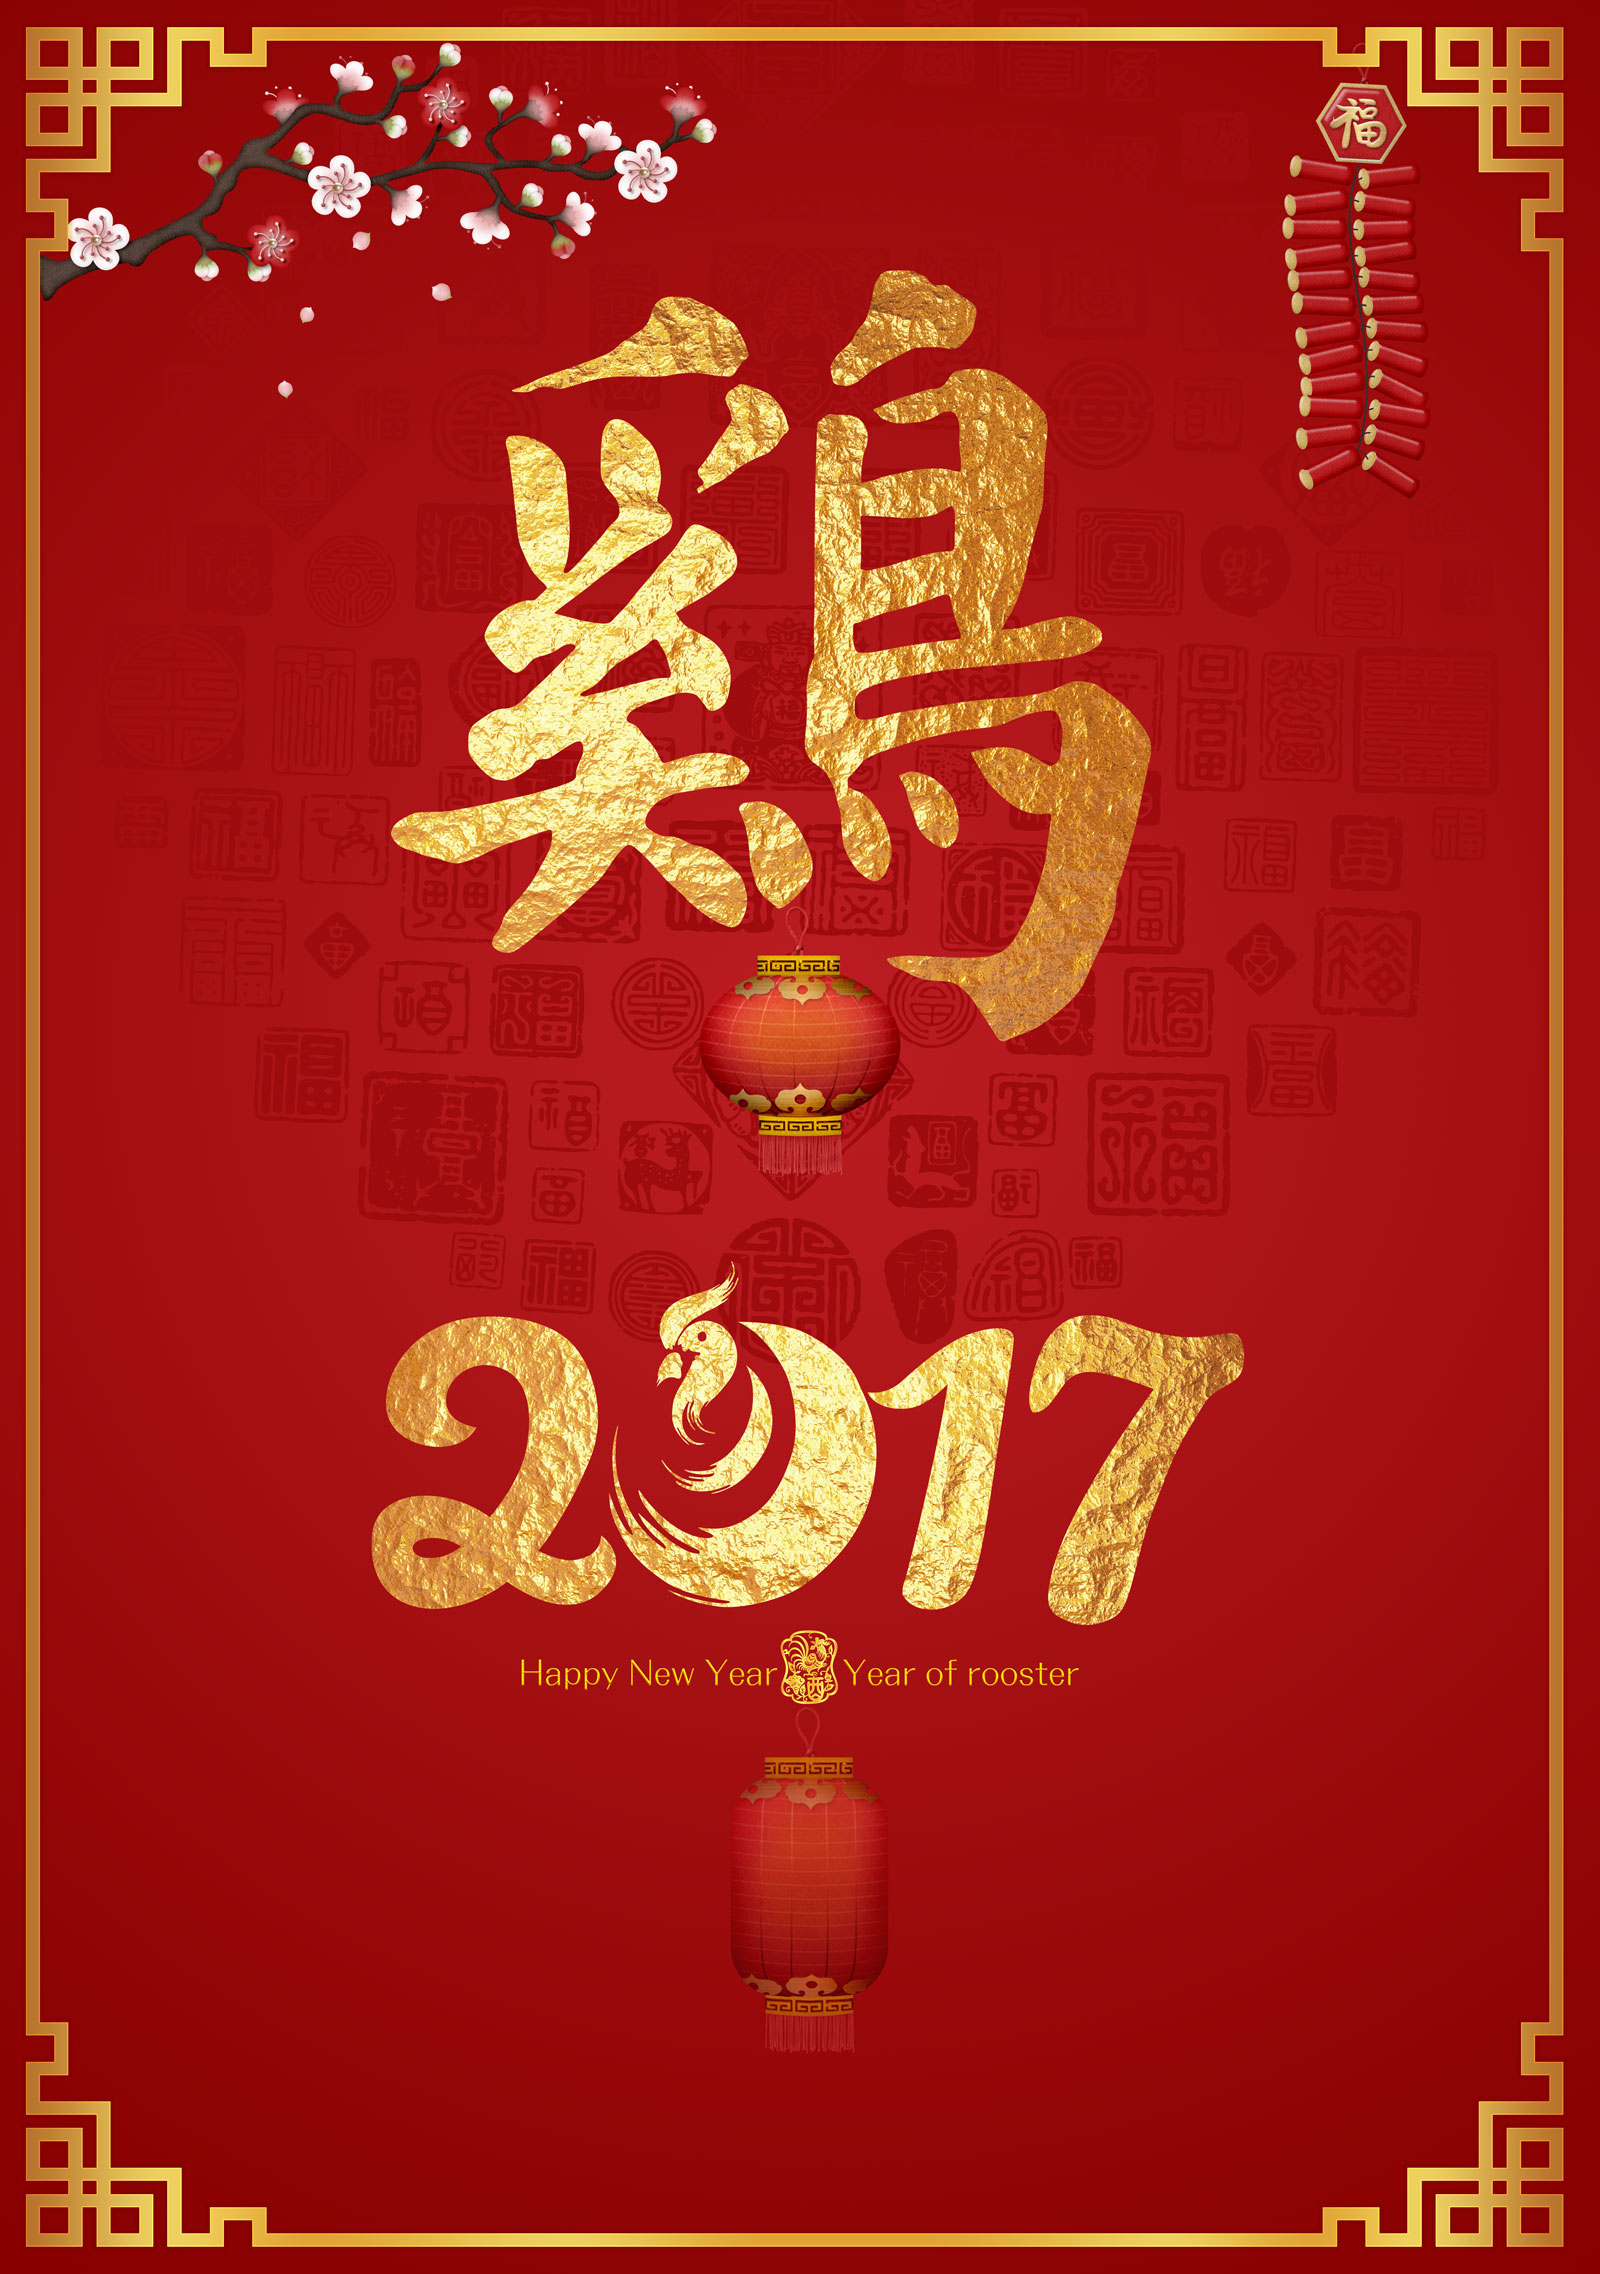 A New Year poster design - China PSD File Free Download